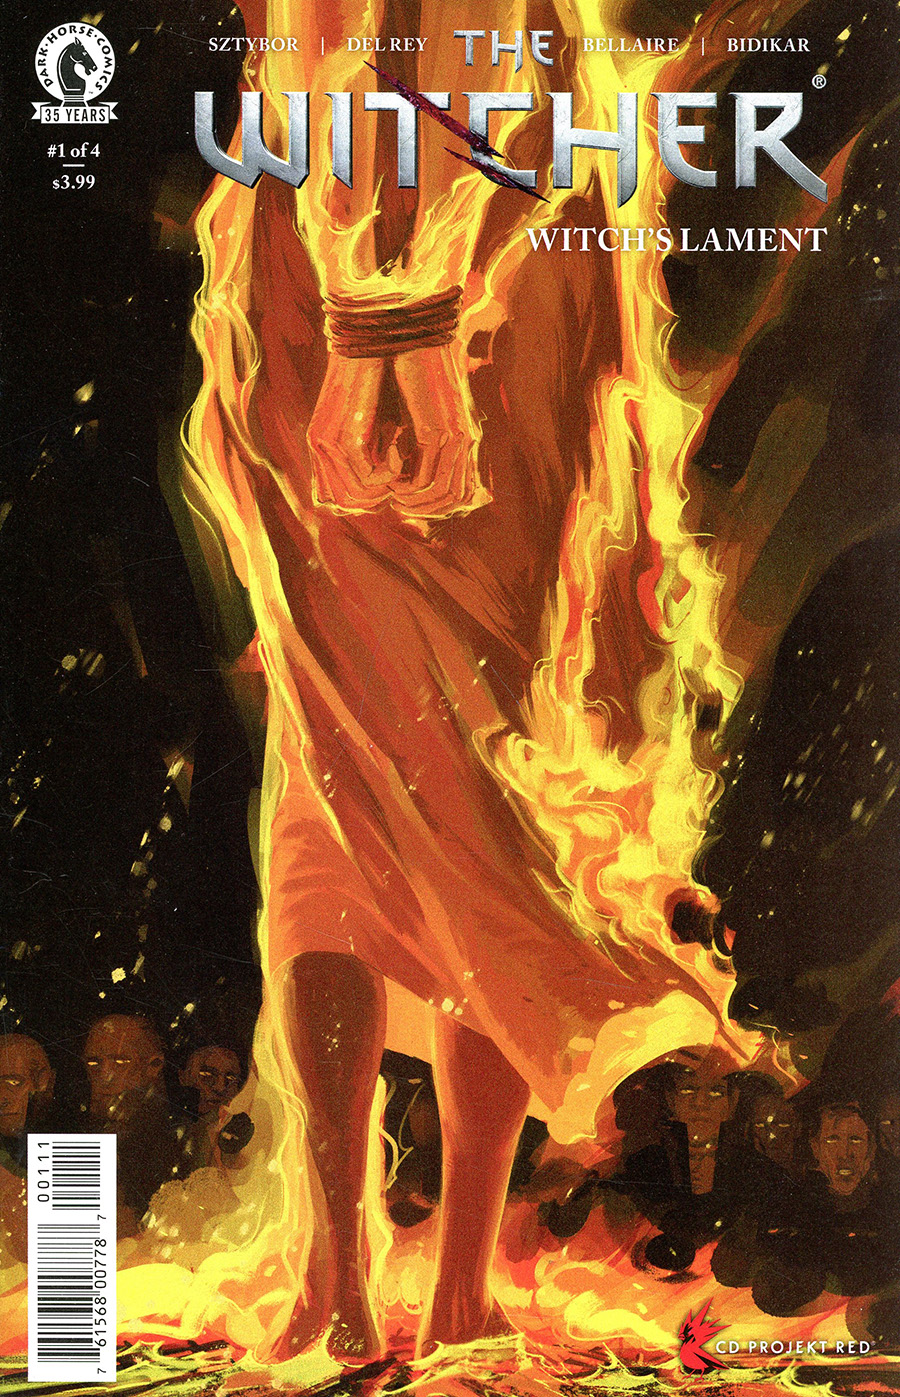 Witcher Witchs Lament #1 Cover A Regular Vanesa Del Rey Cover